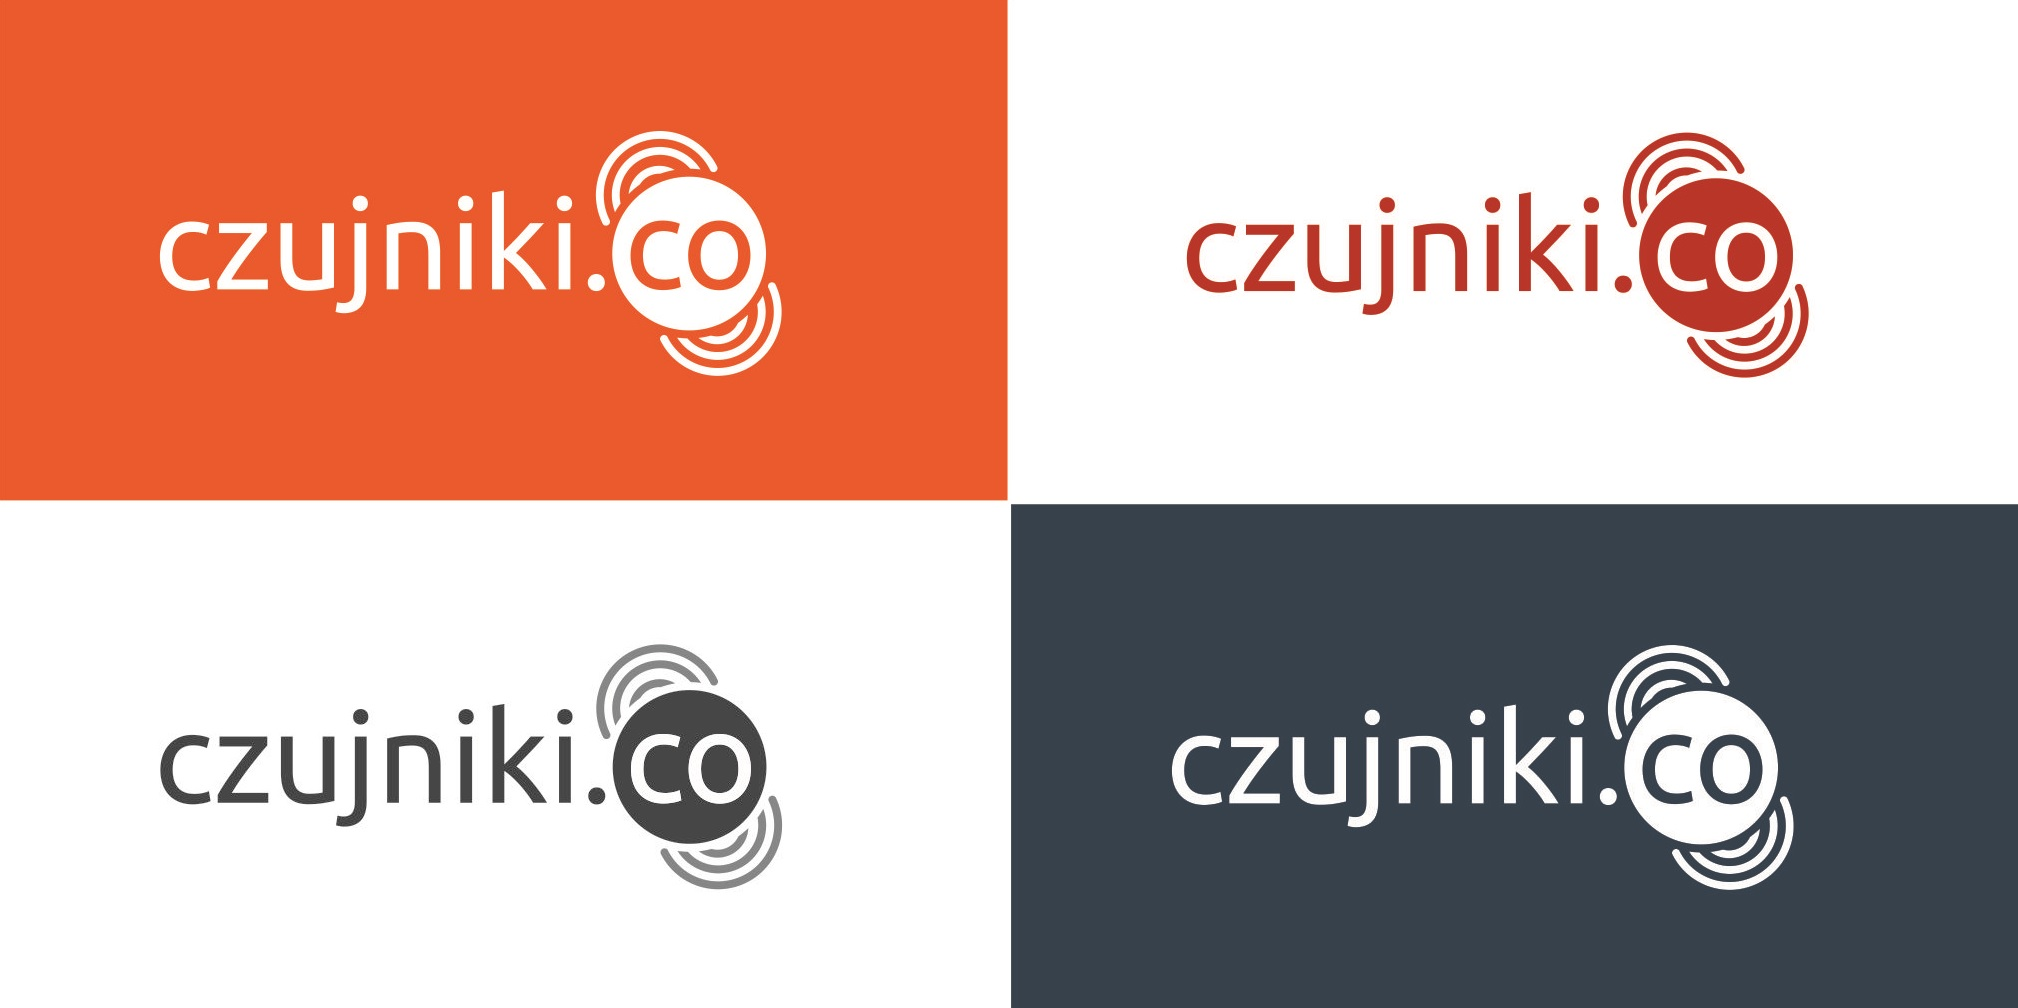 Logo CZUJNIKI.CO